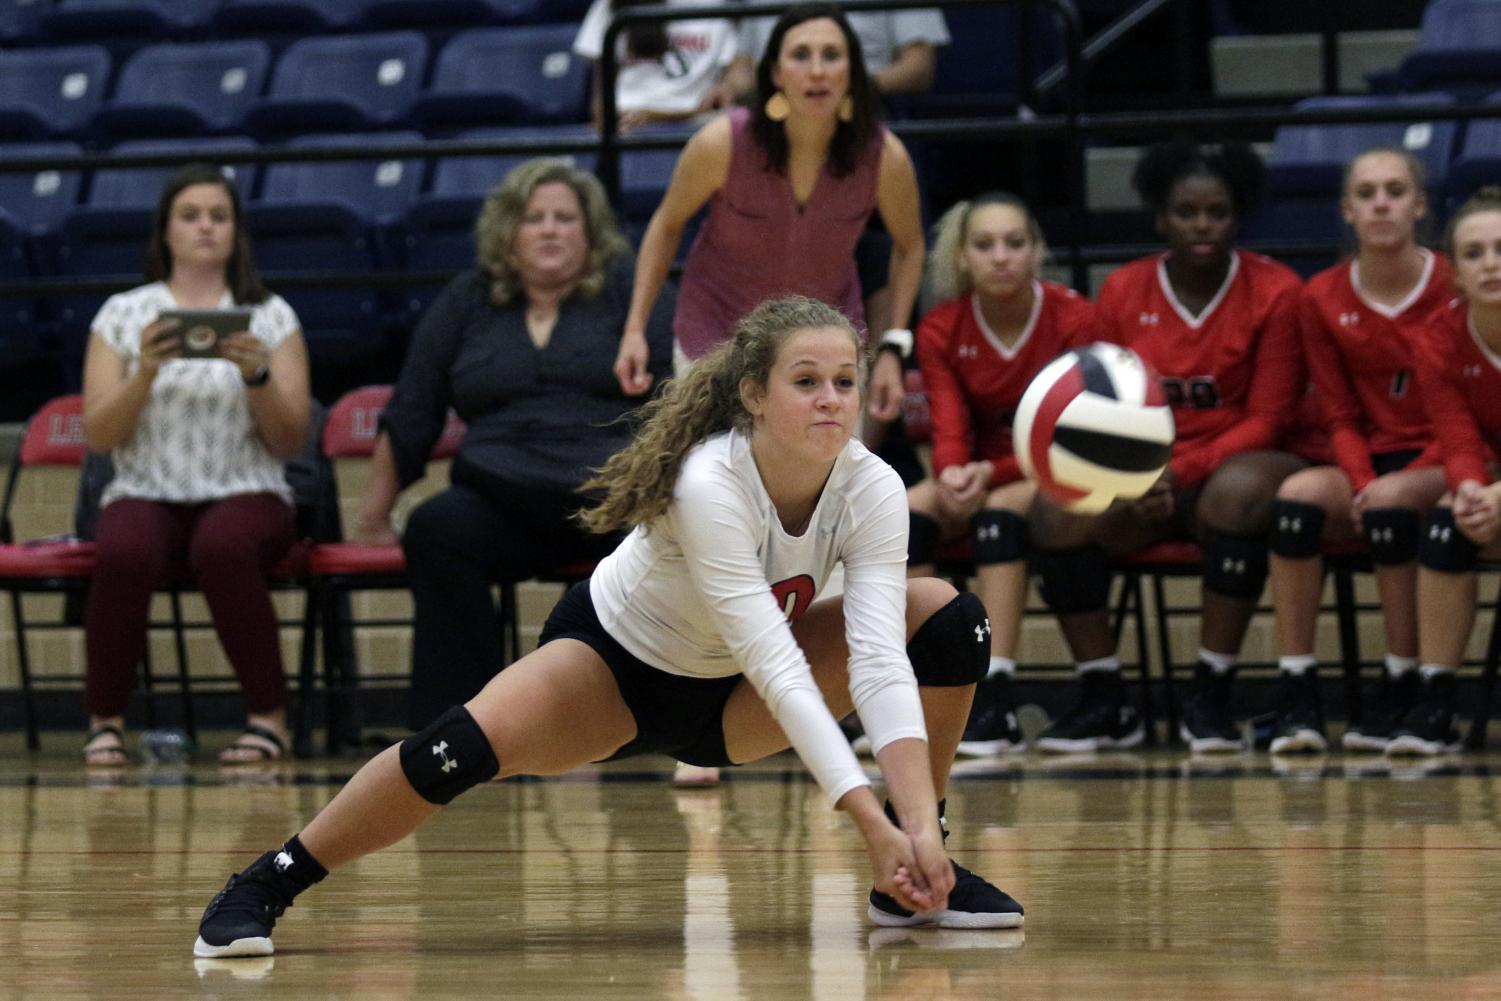 [File photo] Payton Hyden, 11,  digs the ball at a varsity volleyball game.